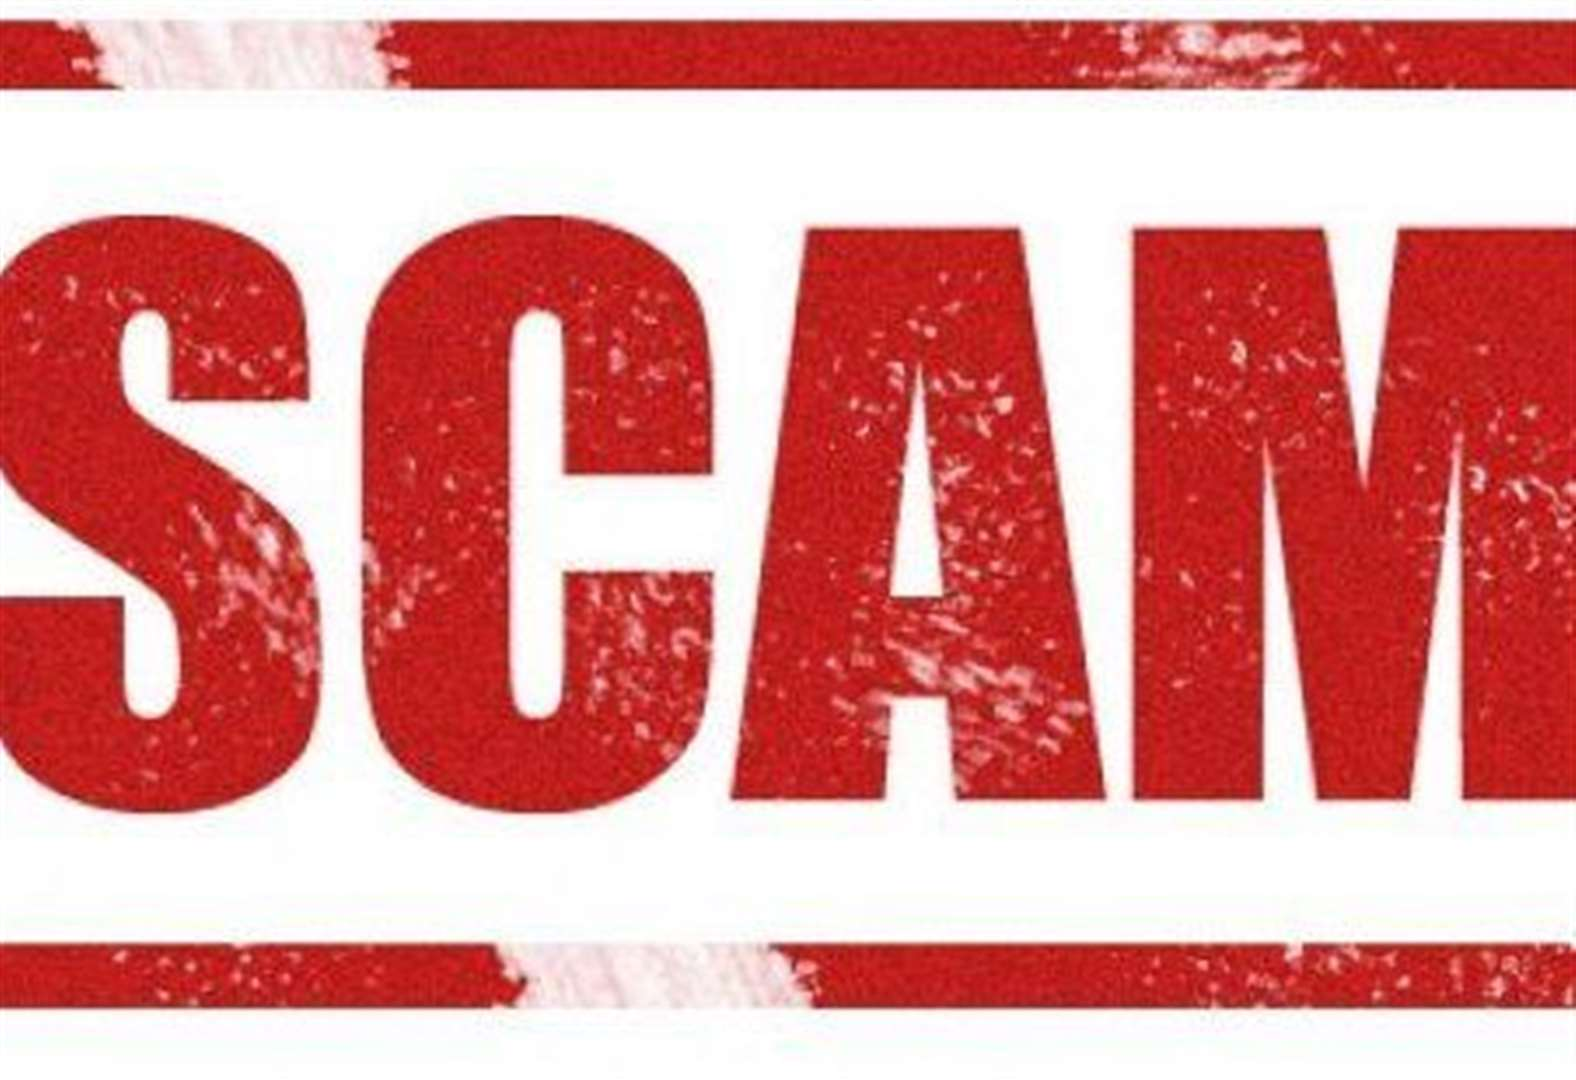 Long Melford resident issues warning after identifying lottery scam in post